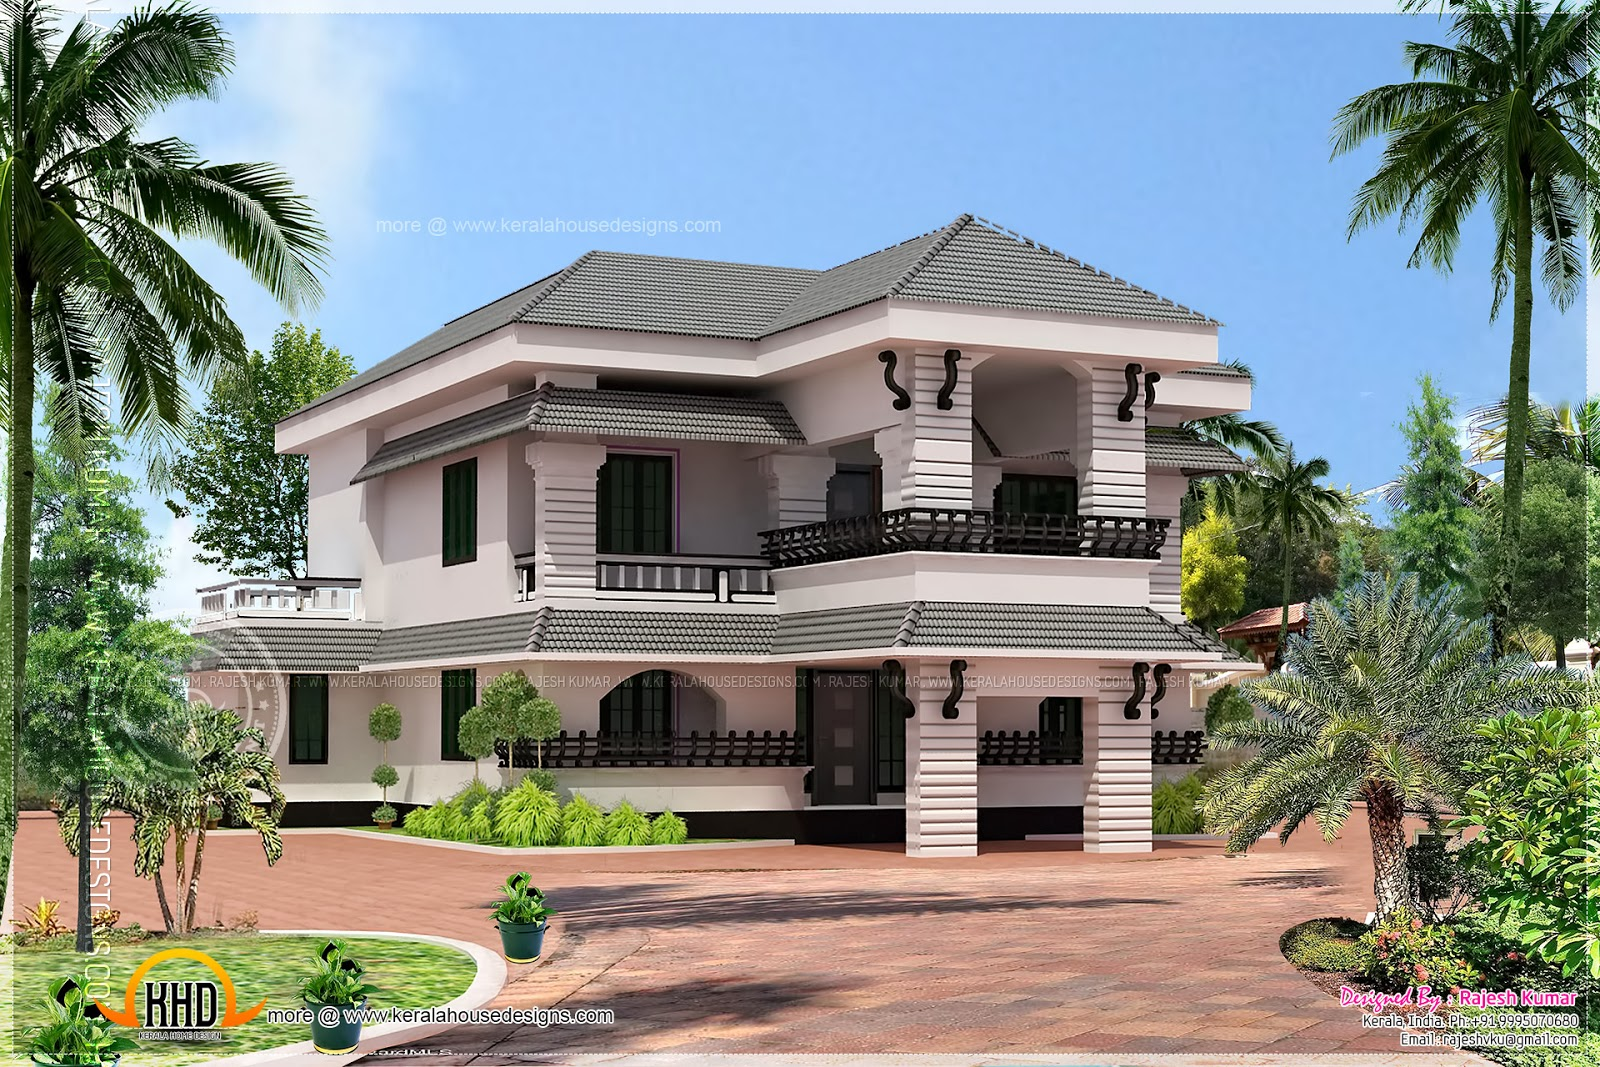 Malabar model home design kerala home design and floor plans for Designer in the house